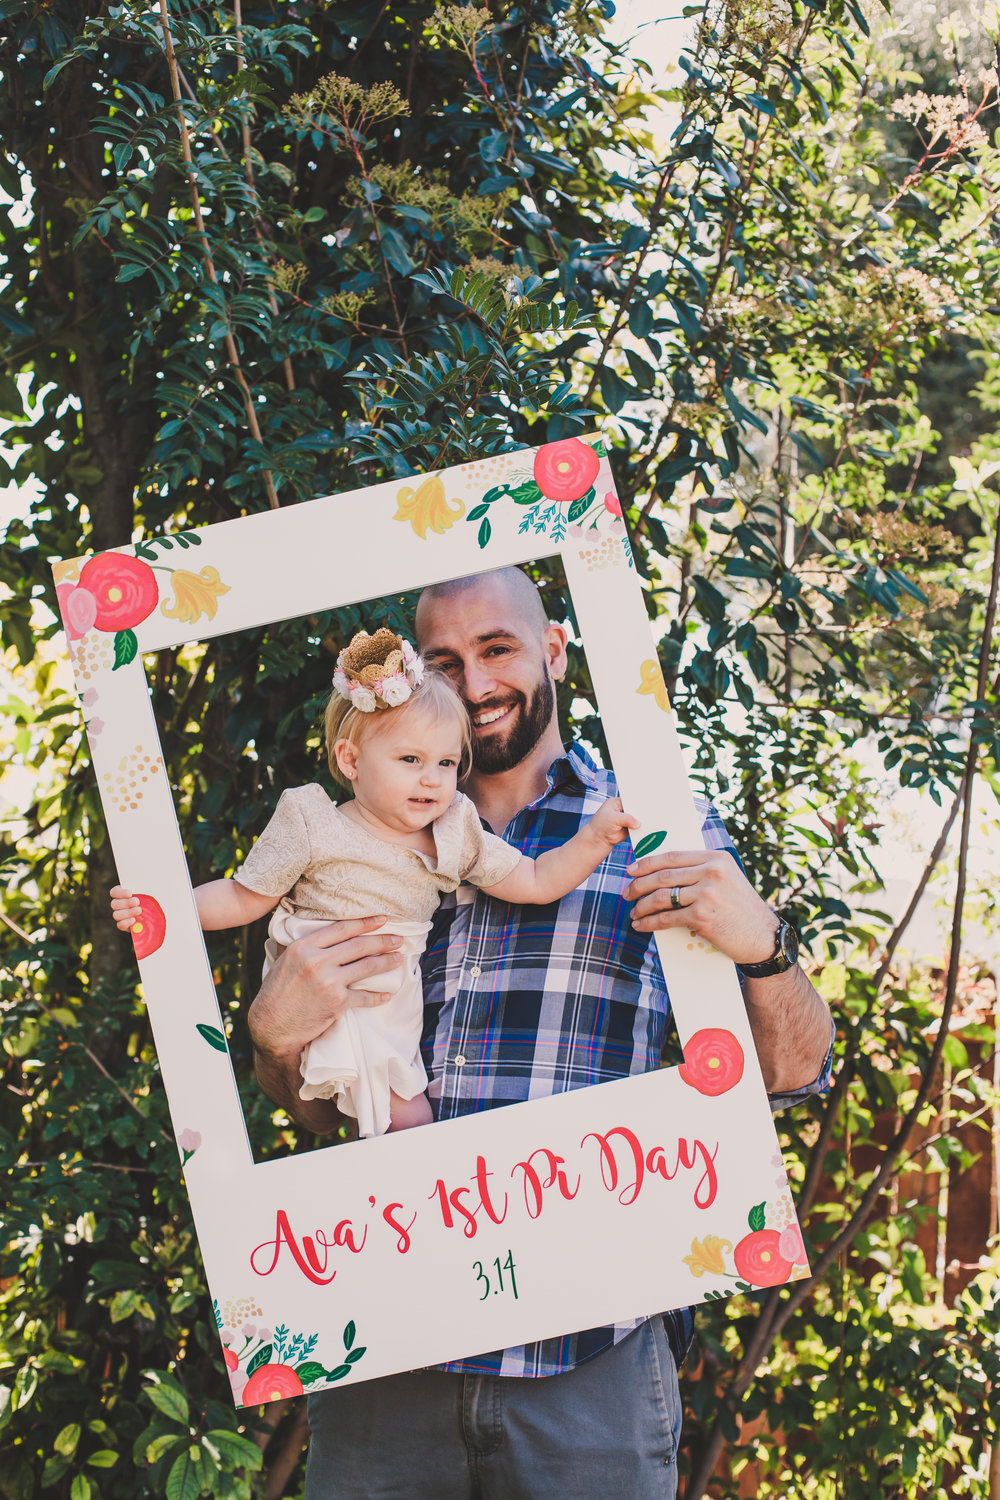 Photo Frames CrowdSigns - Photobooth Props - A Vintage Chic Pi Day Themed 1st Birthday Party